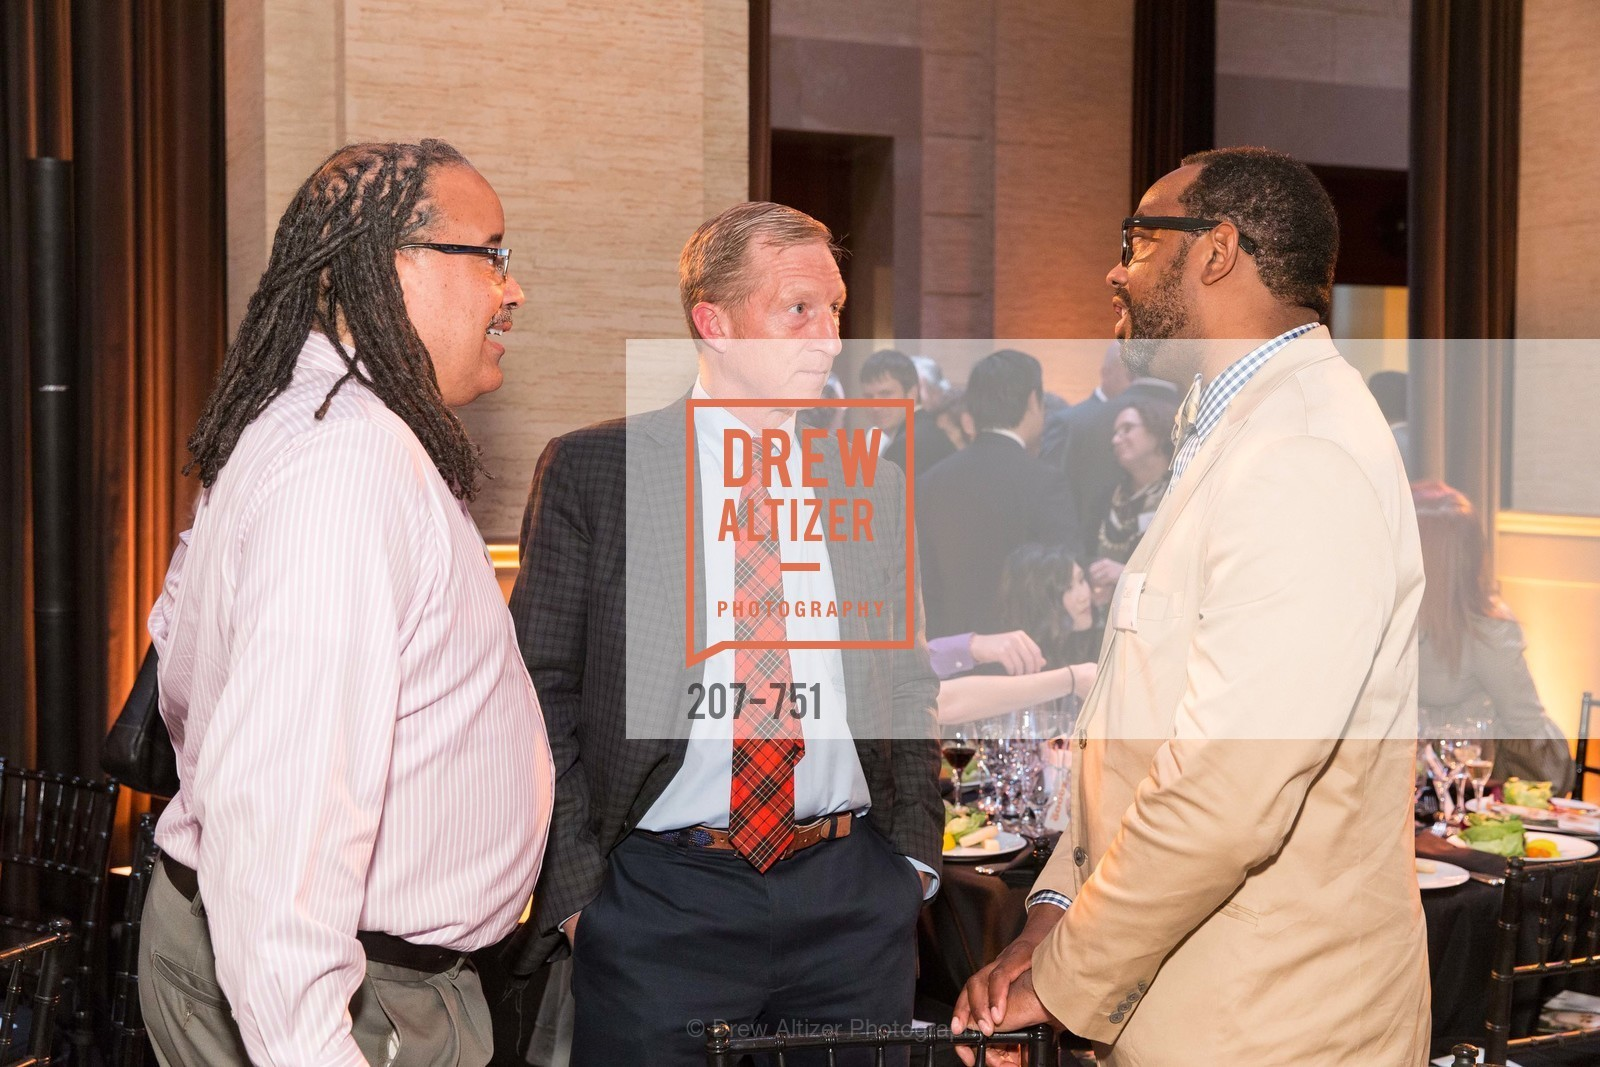 Ludovic Blain, Tom Steyer, Cecil D. Corbin-Mark, CENTER FOR ENVIRONMENTAL HEALTH (CEH) 2015 Gala, US, May 28th, 2015,Drew Altizer, Drew Altizer Photography, full-service agency, private events, San Francisco photographer, photographer california